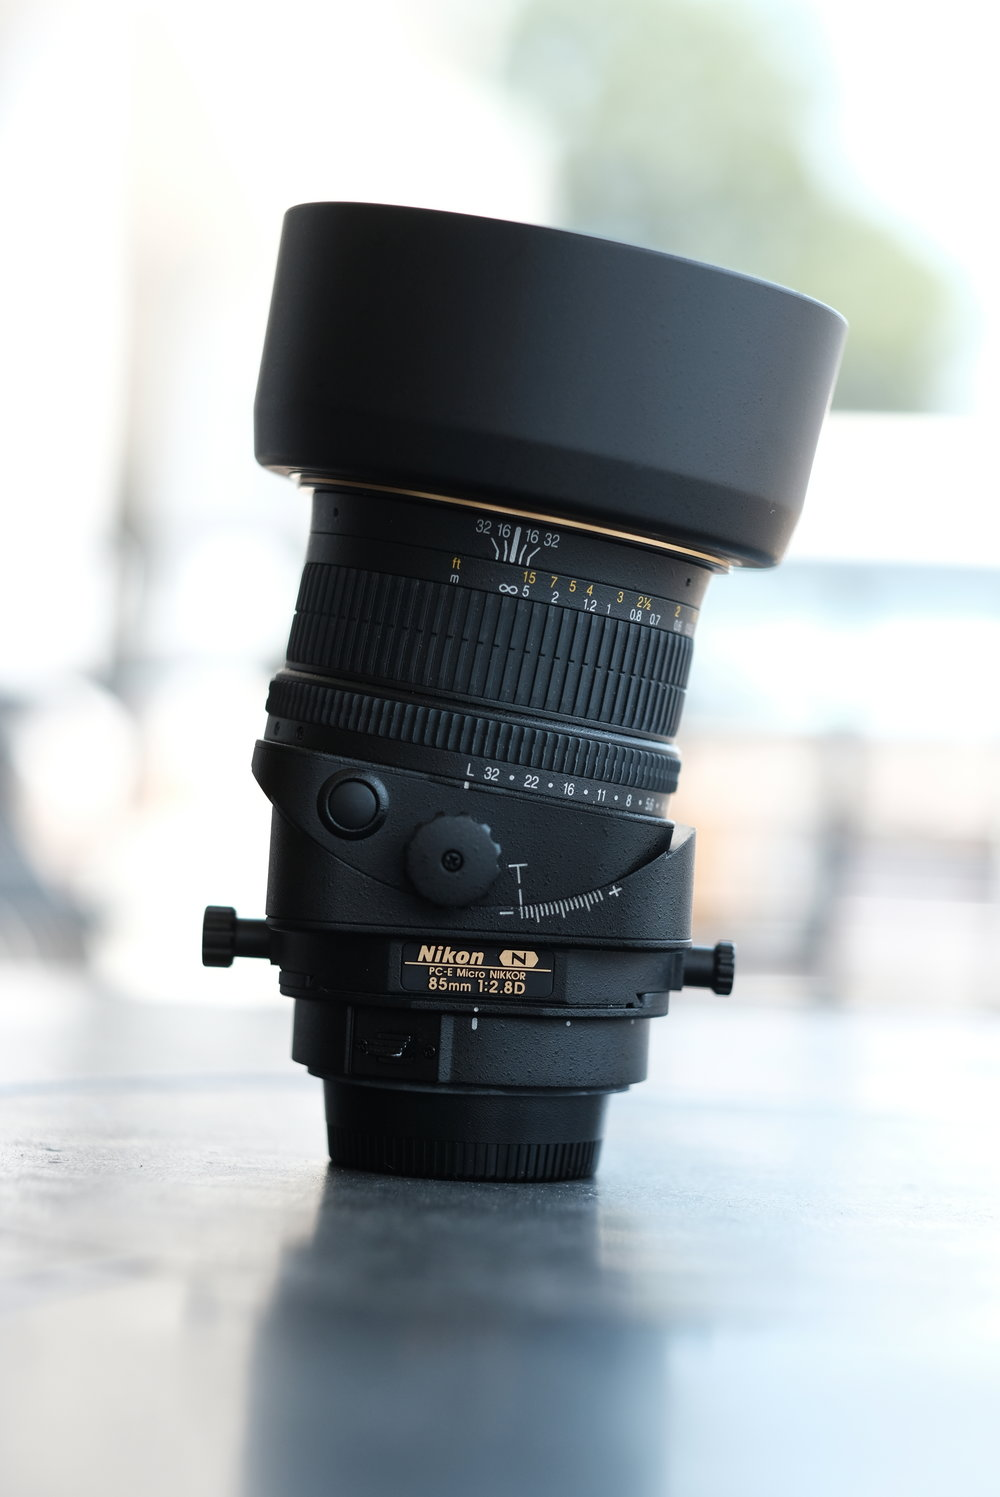 PC-E Micro Nikkor 85mm f/2.8 N - Commercial photographers rejoice! The 85 PC-E is a full frame tilt shift lens. Nikon's Close Range Correction system allows this lens to focus at a wide range of distances by utilizing a floating lens group design. The 1:2 macro perspective will make this lens right at home in any commercial studio or macro photographer's gear bag. The used copy we have is very clean and with our 90 day warranty is a home run for any serious photographer that needs a seriously versatile lens.Price: $675